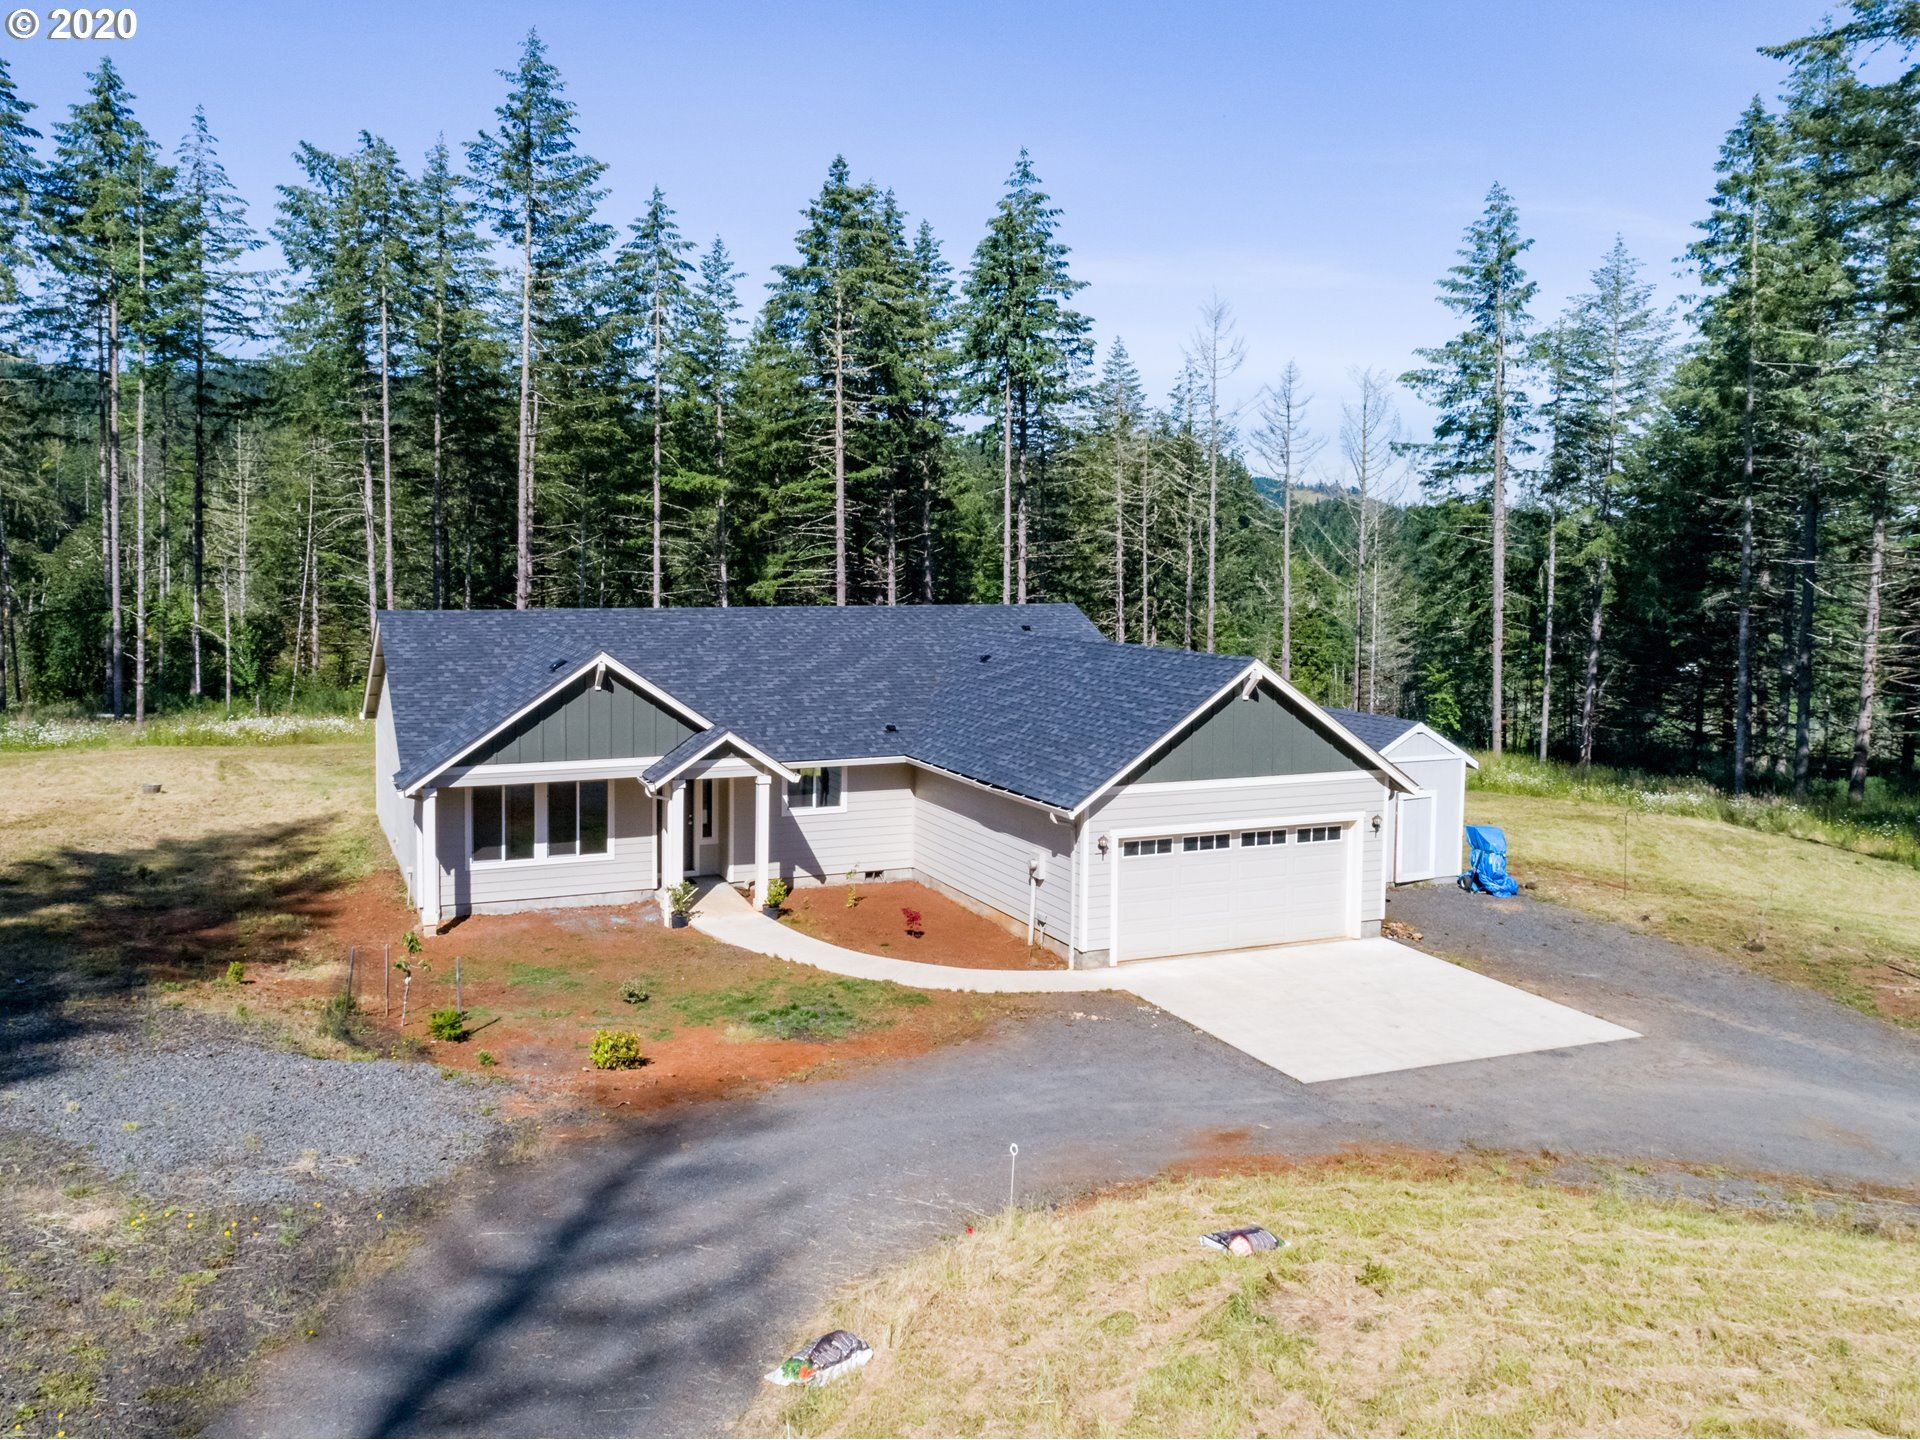 Photo for 82320 BEAR CREEK RD, Creswell, OR 97426 (MLS # 20430941)